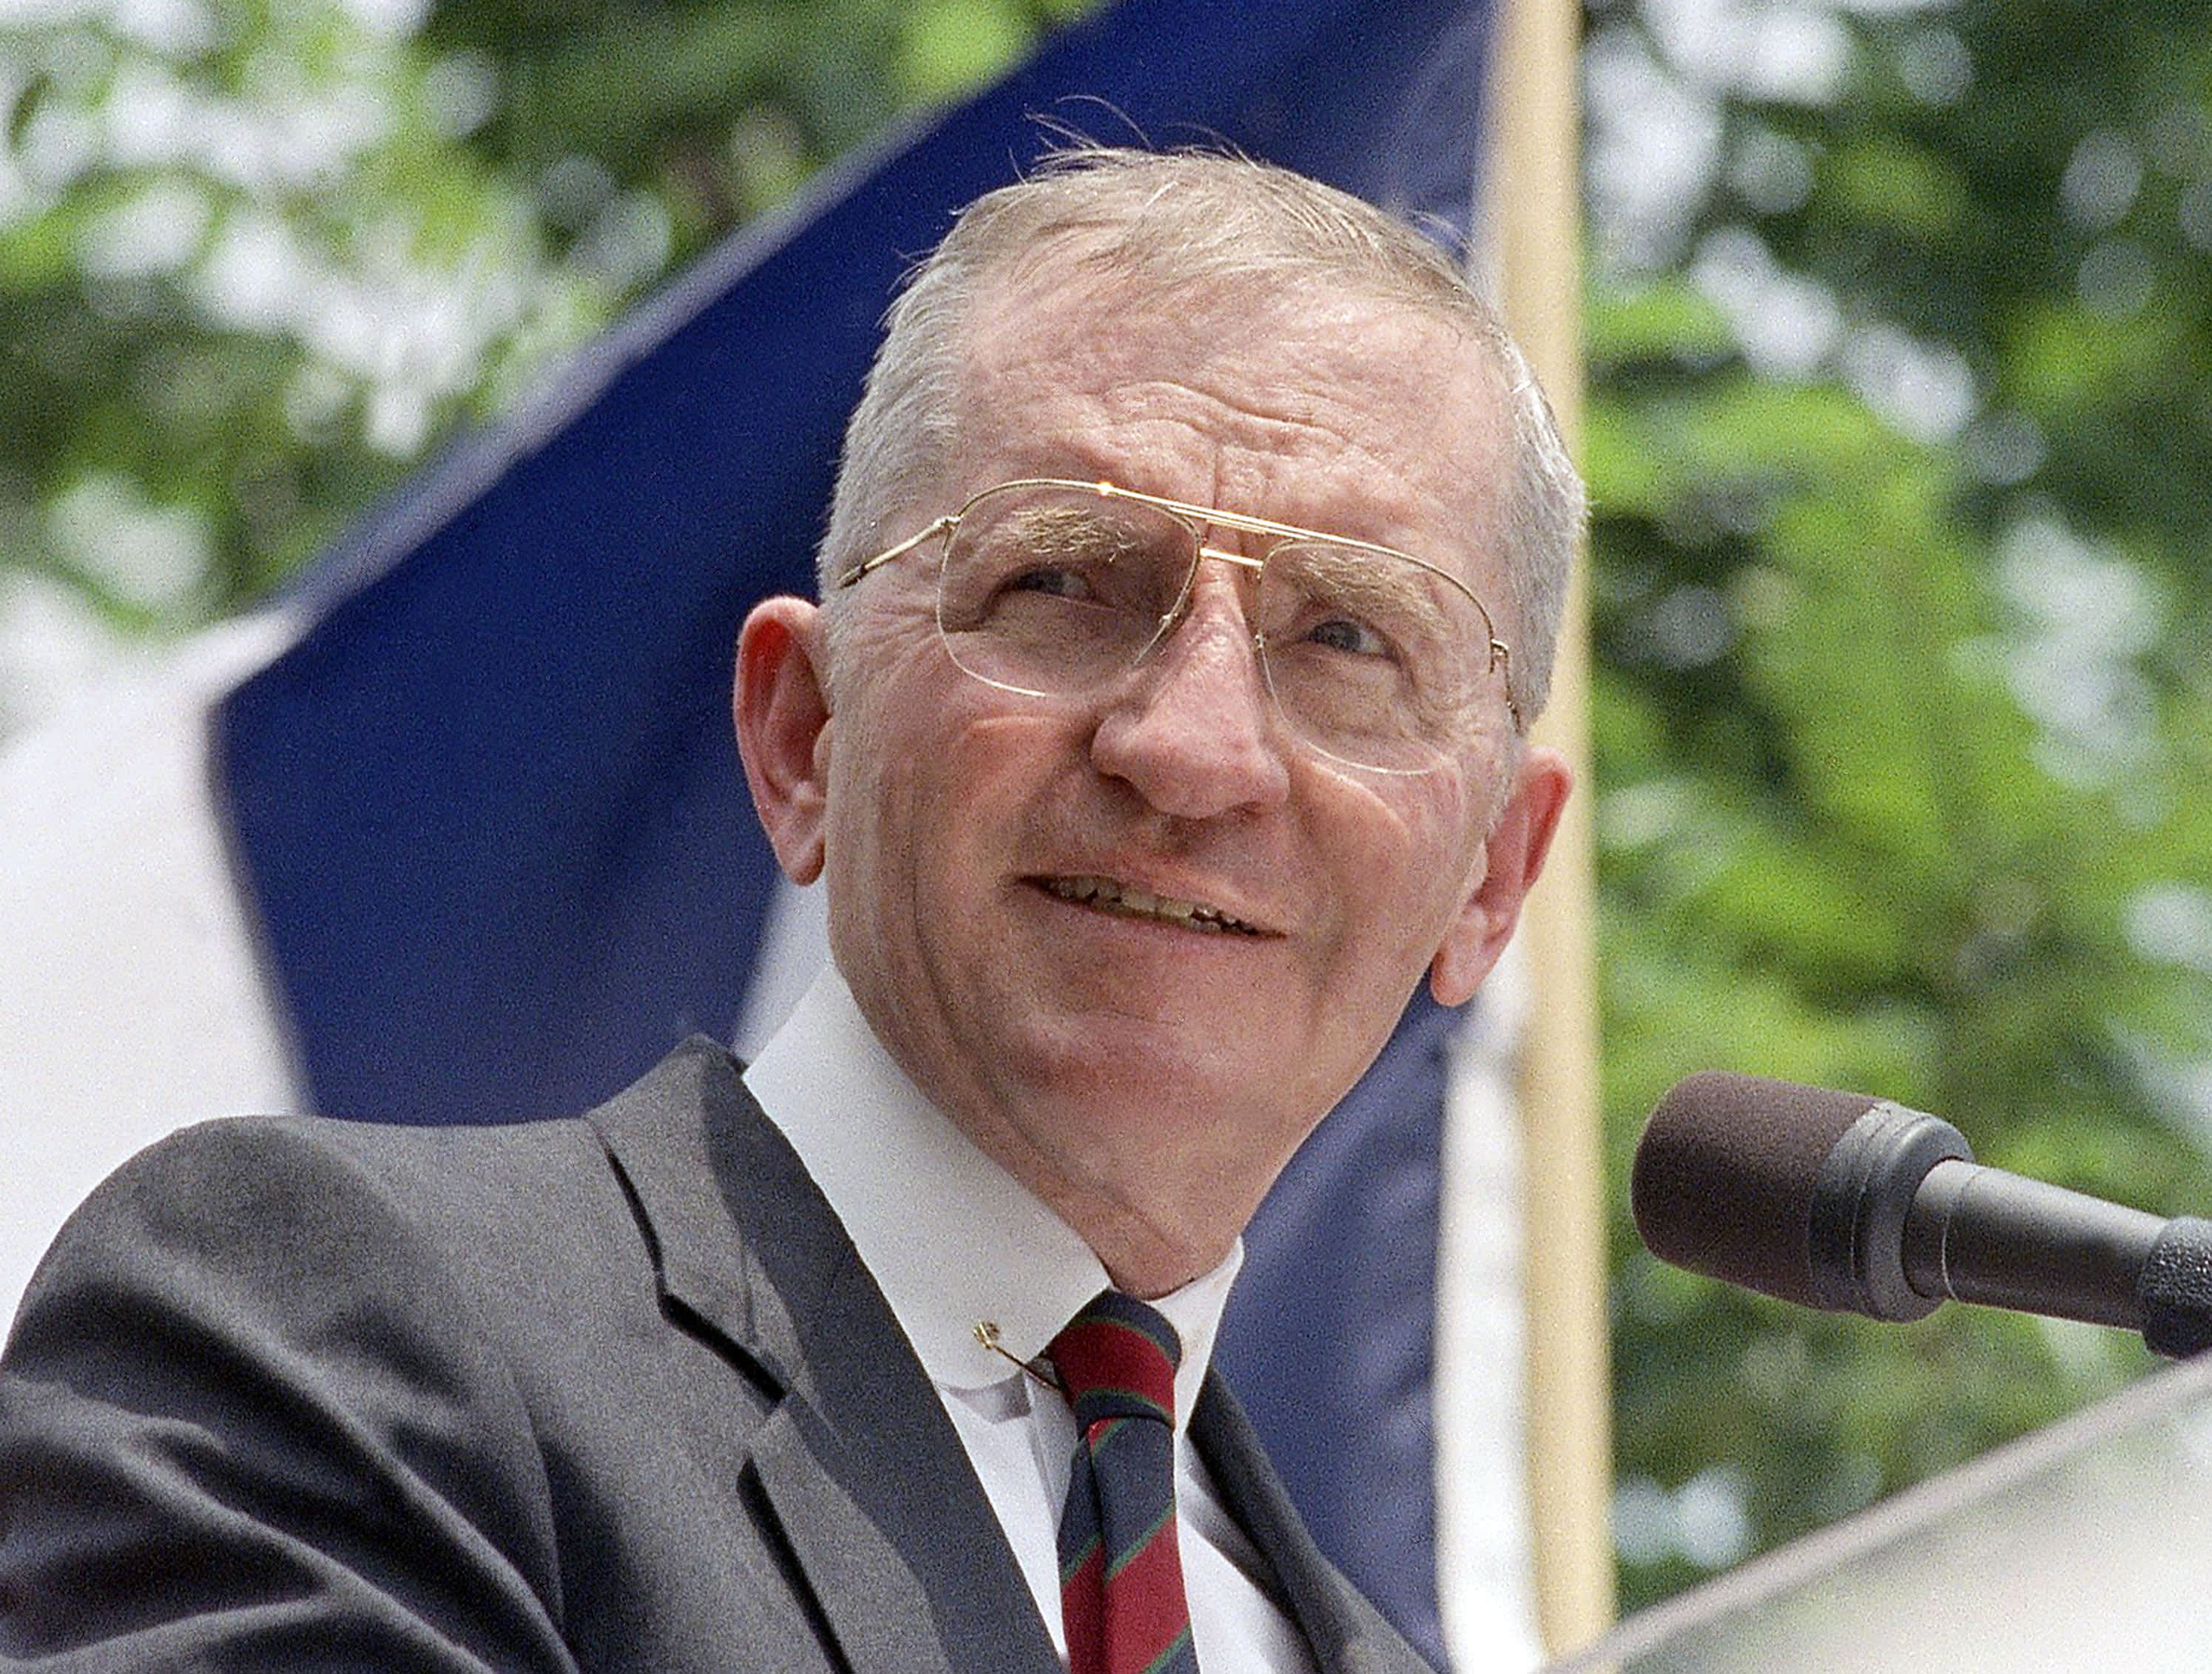 Billionaire and former presidential candidate Ross Perot is dead at 89